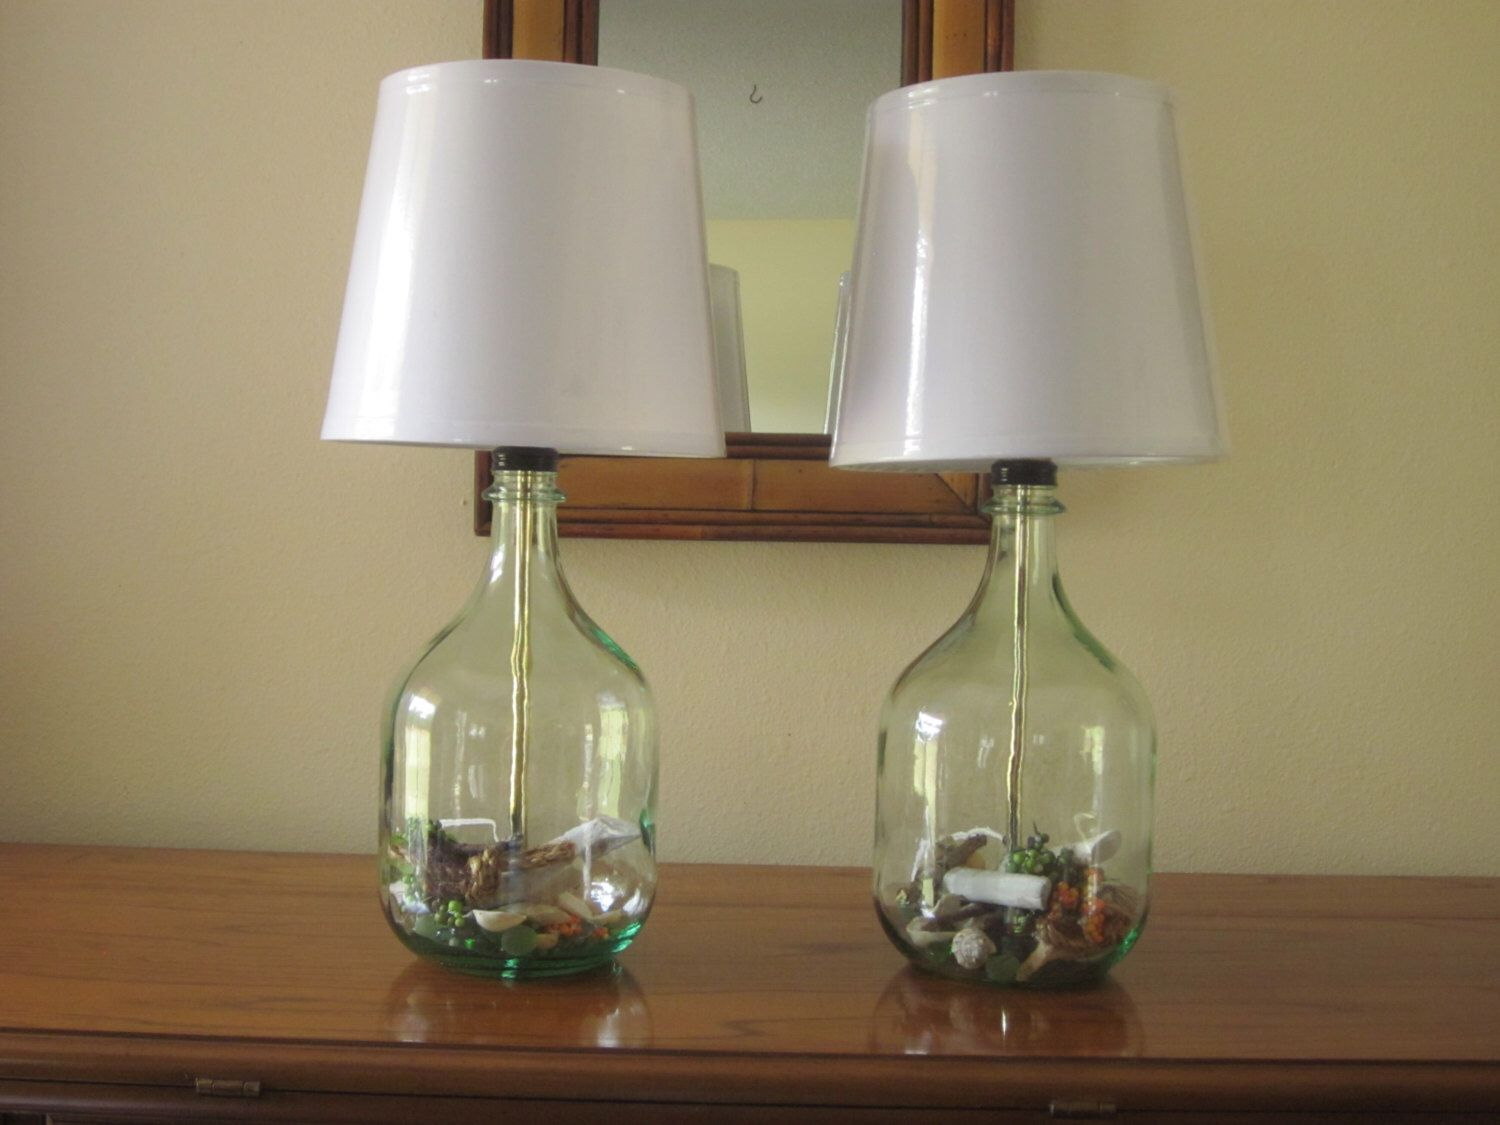 Set of 2 table lamps bedside lamps bedroom lamps nautical decor set of 2 table lamps bedside lamps bedroom lamps nautical decor glass geotapseo Image collections